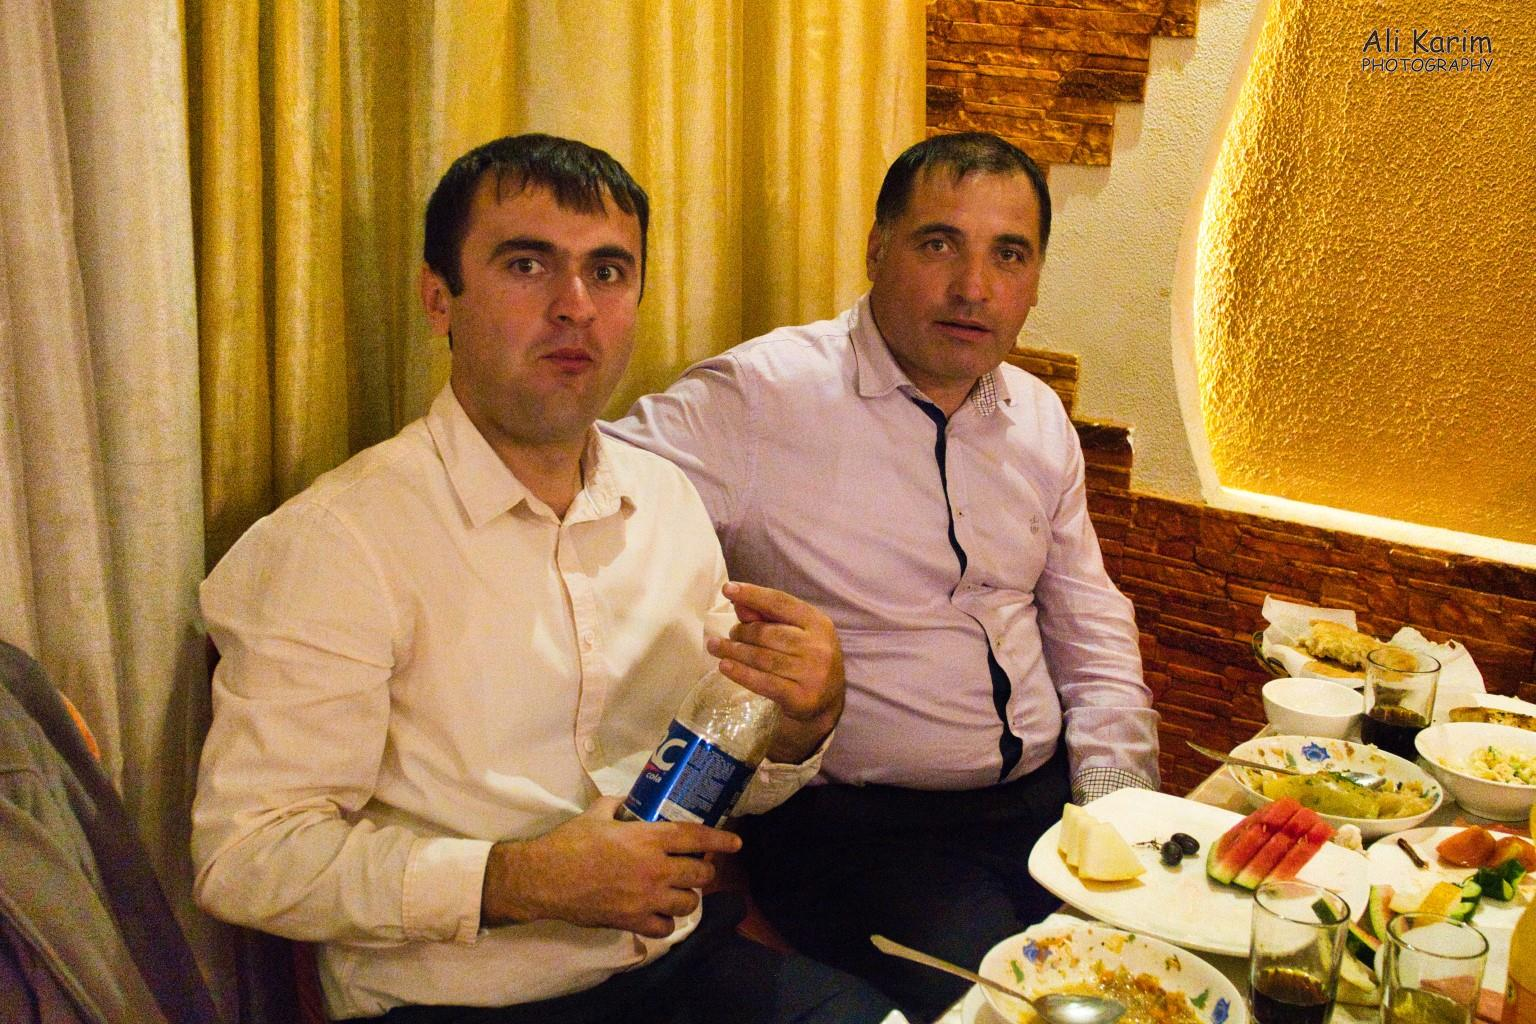 Onto Khorog, Tajikistan, Masrur on right and his friend took good care of me at their table